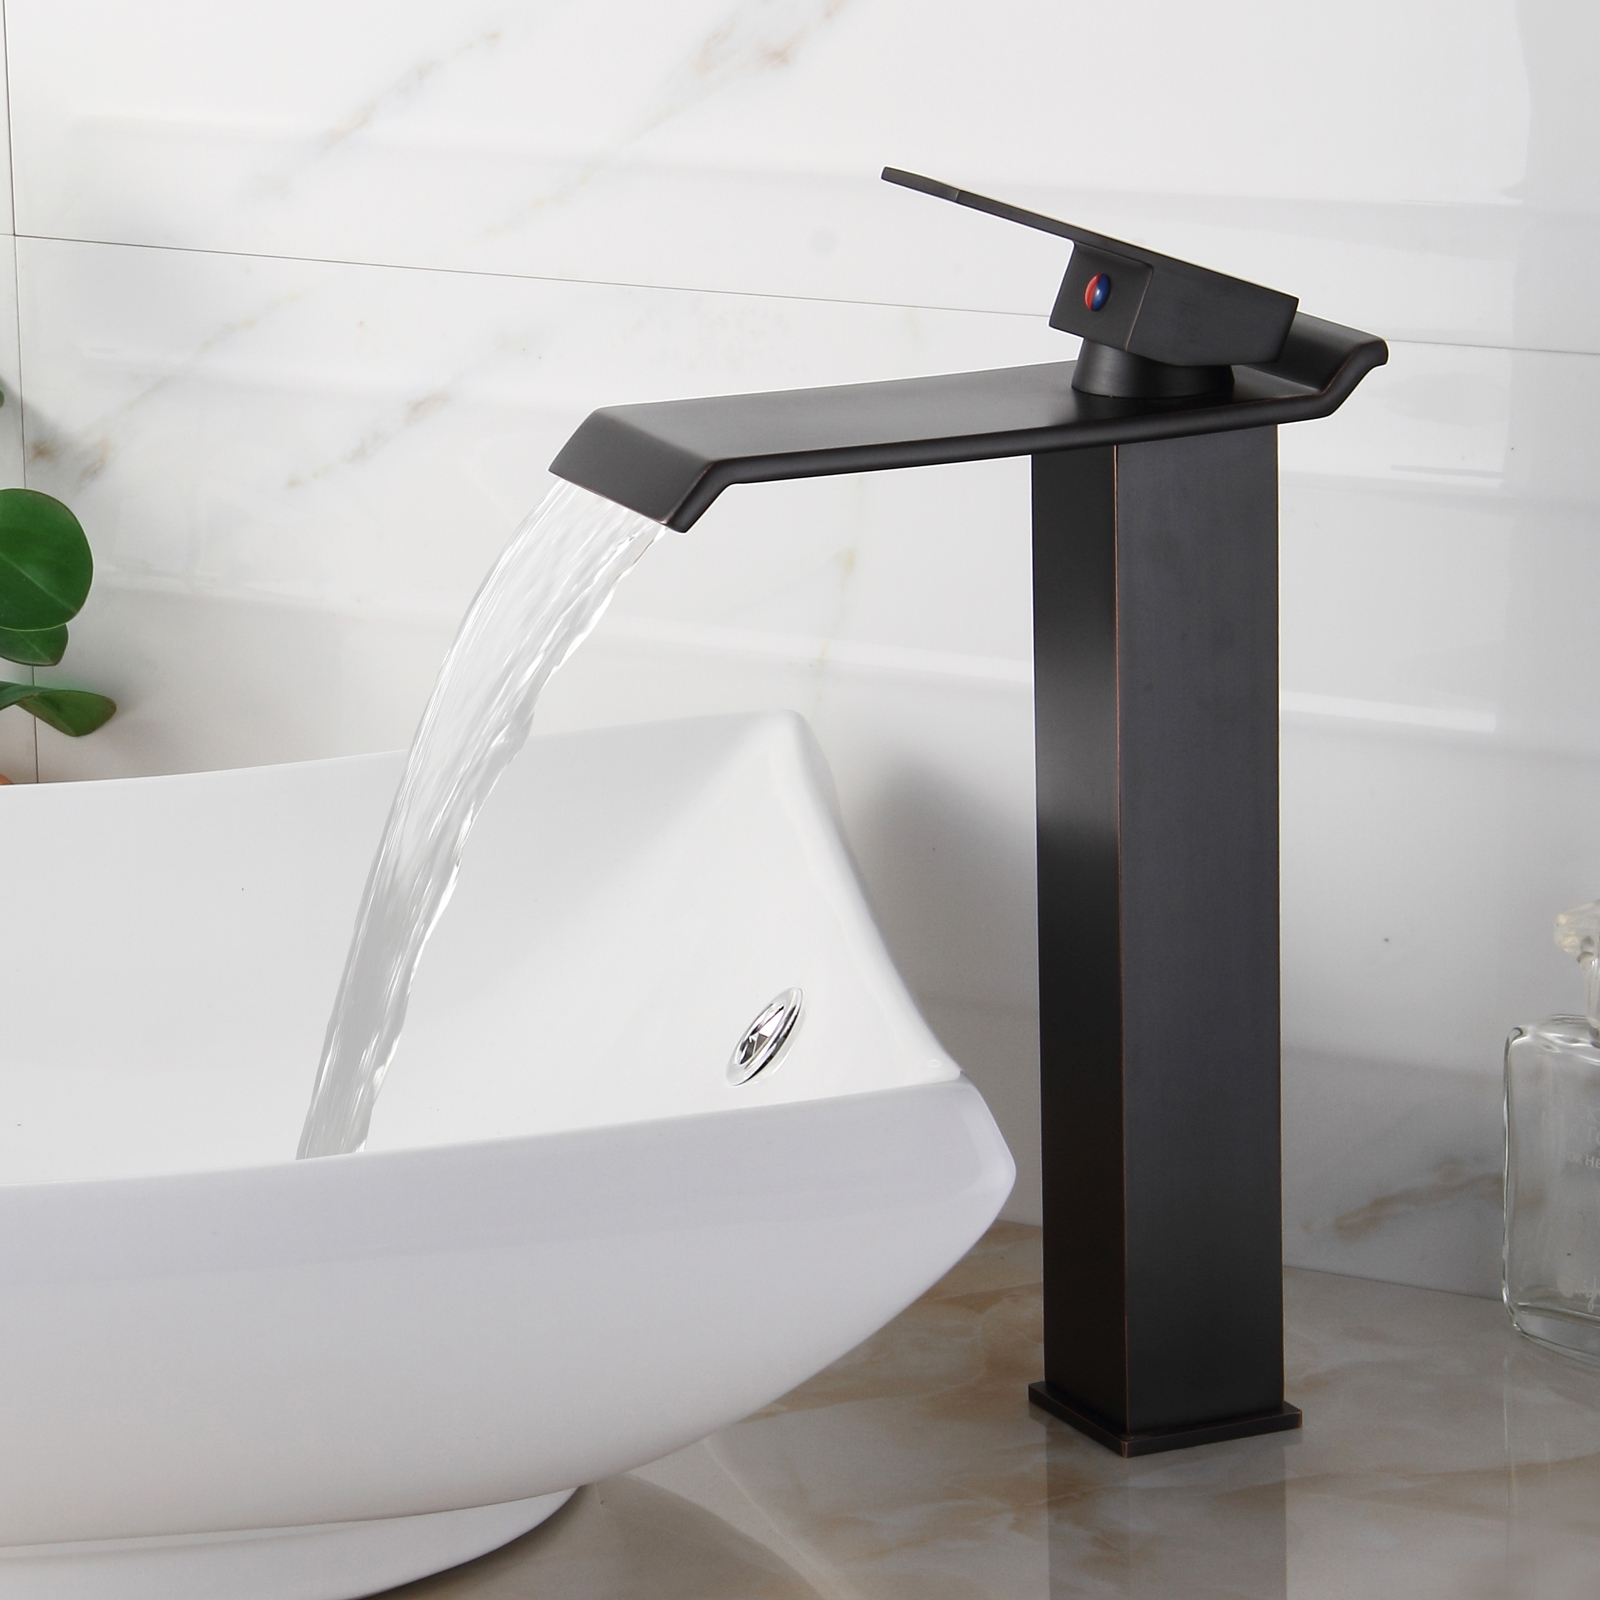 Ideas, elite 8818orb oil rubbed bronze waterfall vessel sink faucet throughout proportions 1600 x 1600  .